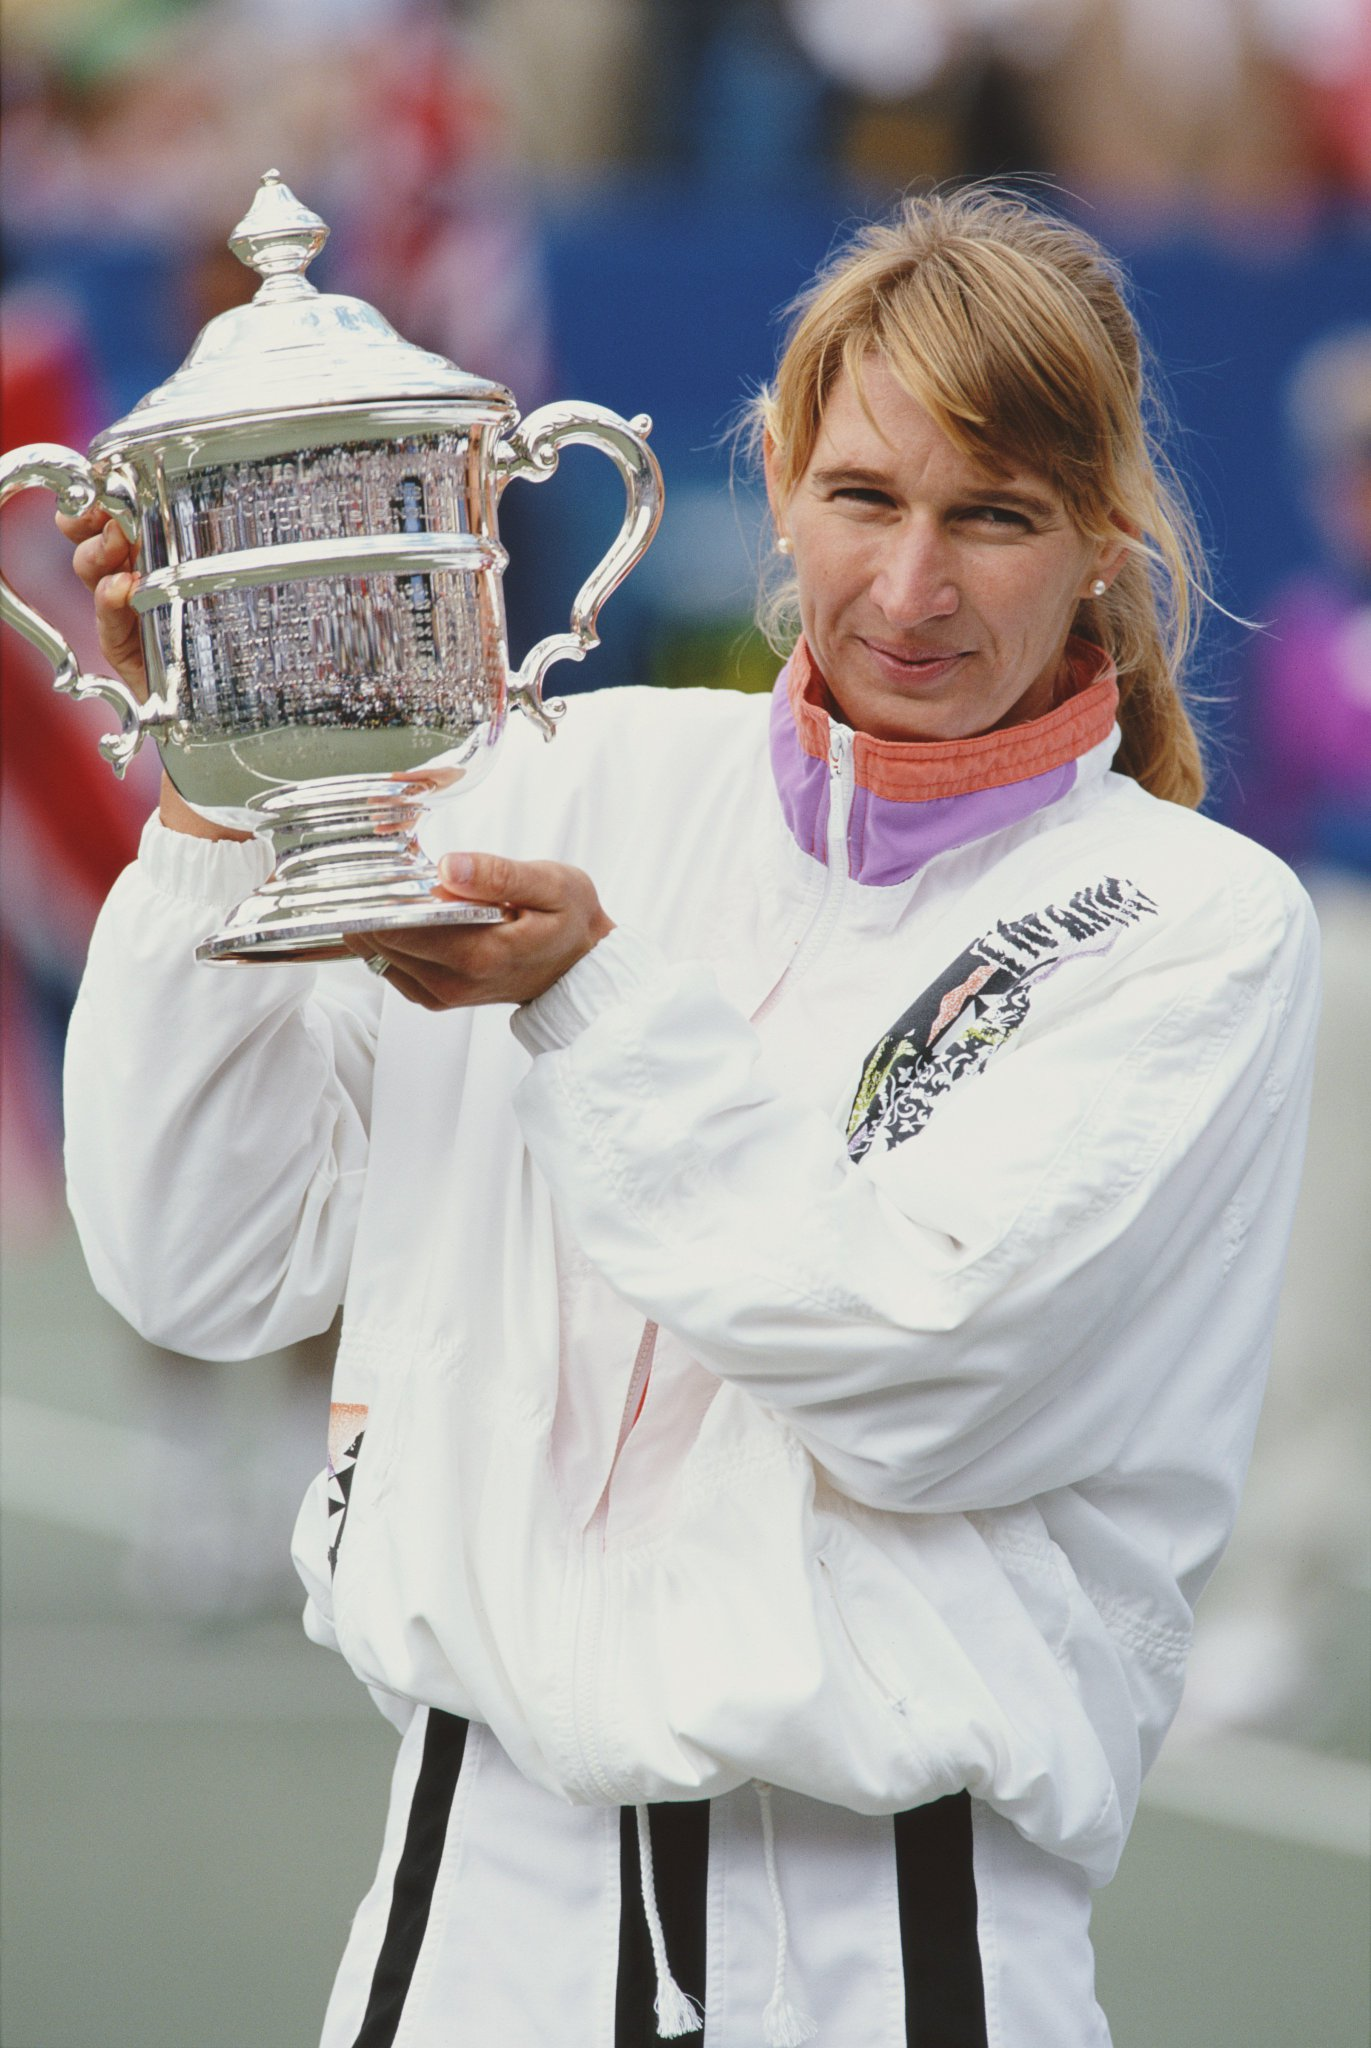 Happy 48th birthday, Steffi Graf!